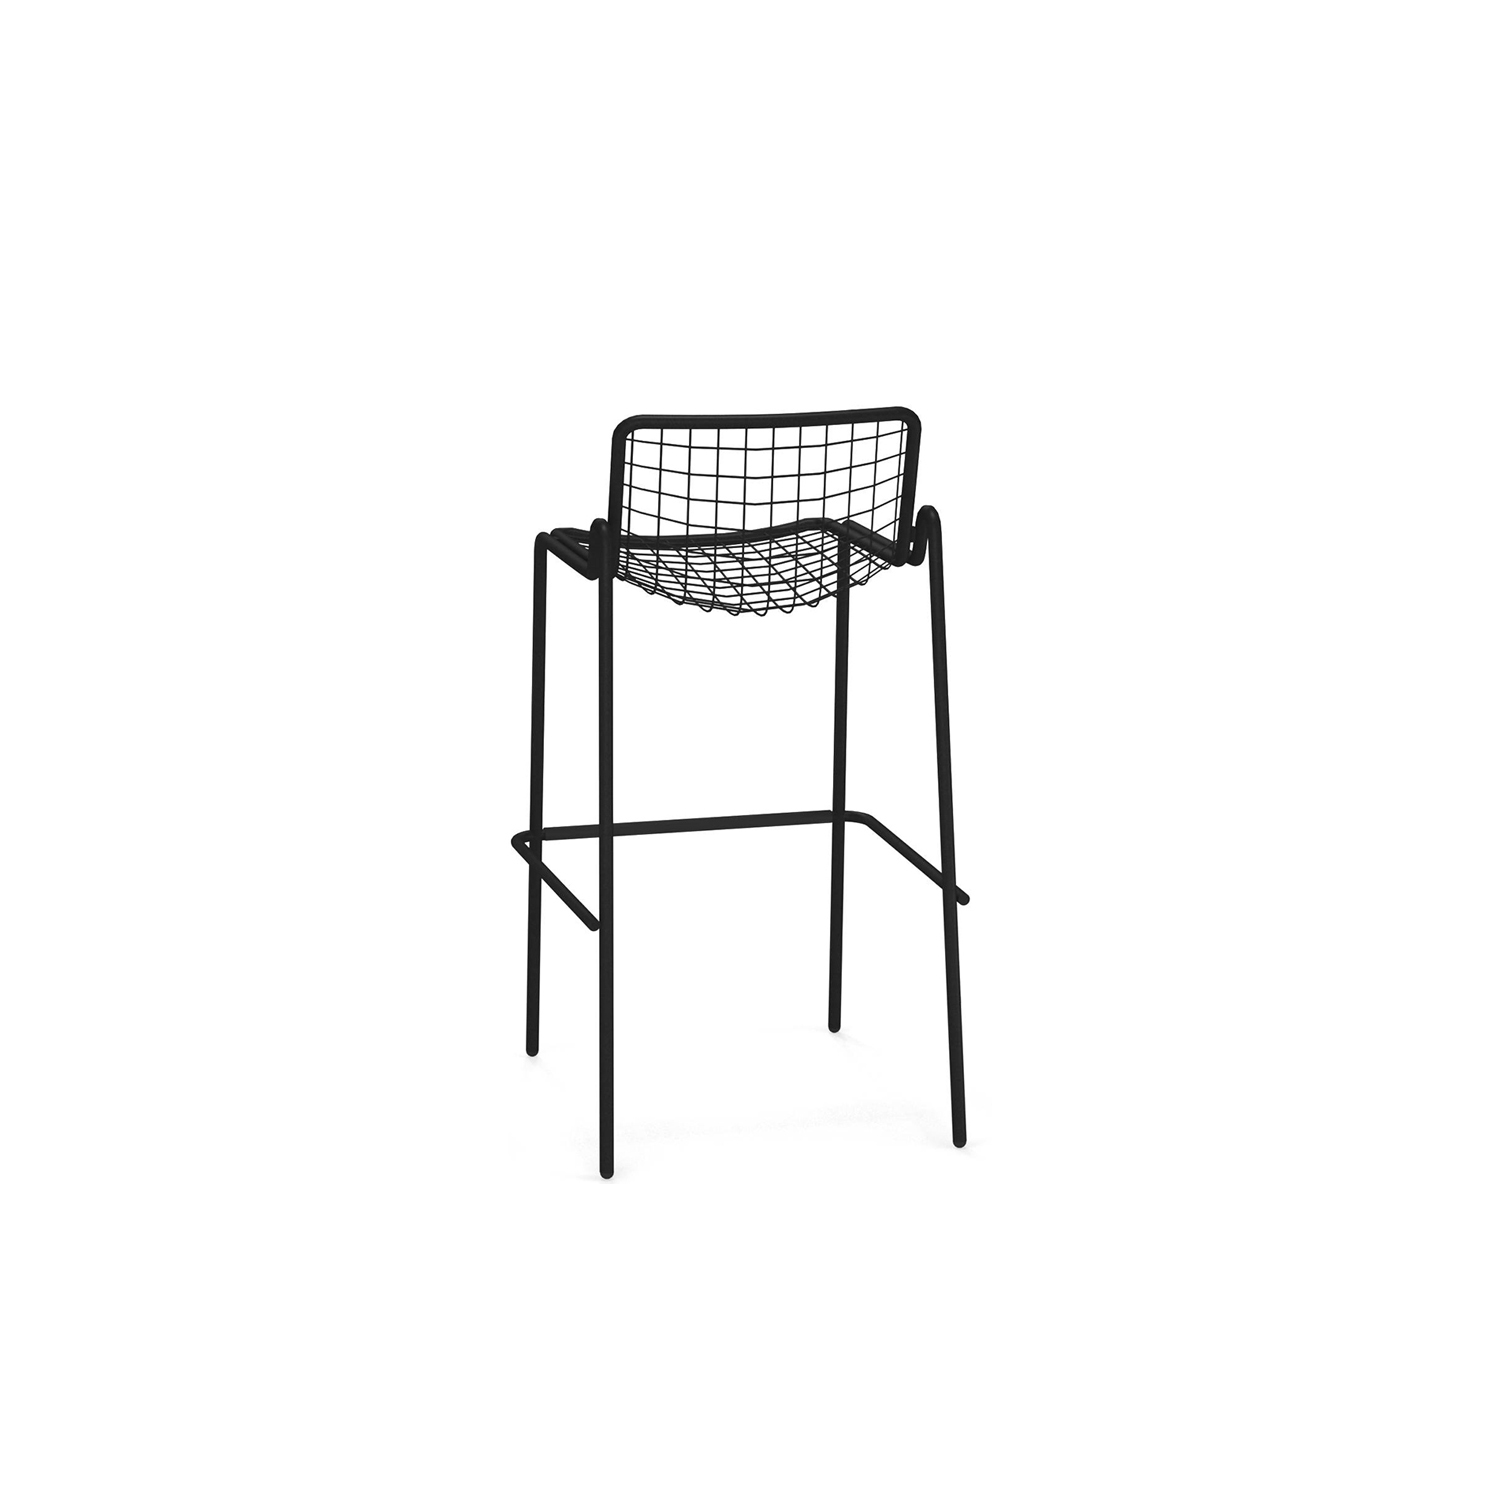 Rio R50 Barstool - Set of 4 - <p>RIO R50 is an expertly crafted re-edition of the historic model Rio of the 70s. RIO R50 has a frame in ASFORM steel tube, high-quality steel with high mechanical performance and high resistance to weight. </p> <p>The manufacturing process creates a strongly characterized sign, a letter R, which is identified in the junction between seat and backrest. All structural weldings are made with Mig technology which gives great resistance to stress and rust risk; meanwhile the net, composed by steel wires, is electro-welded to the frame for a more precise aesthetics. </p> <p>Like all EMU products, a cataphoresis pretreatment is provided and then a thermosetting powder coating treatment, which finally produces a layer of homogeneous paint in terms of thickness with a high level of adherence and resistance. Nylon feet supports make it easy to move and protect the product.</p> <p>RIO R50 is a complete seats collection composed by dining chair and armchair, lounge armchair, swing armchair, stool and coffee table.</p>    Matter of Stuff